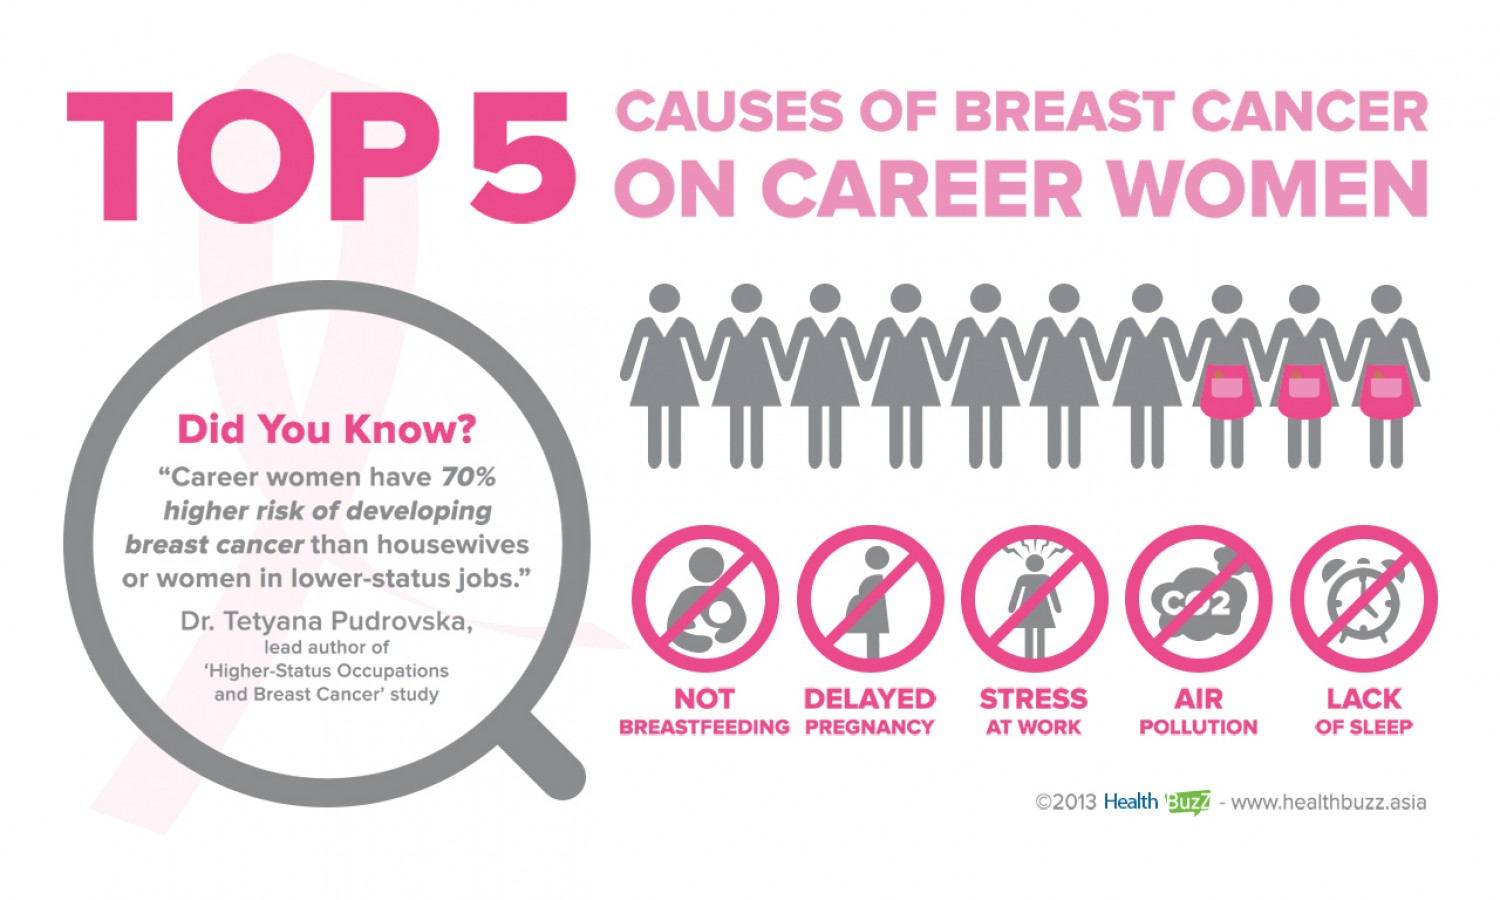 top-5-causes-of-breast-cancer_52e7768a12da5_w1500.